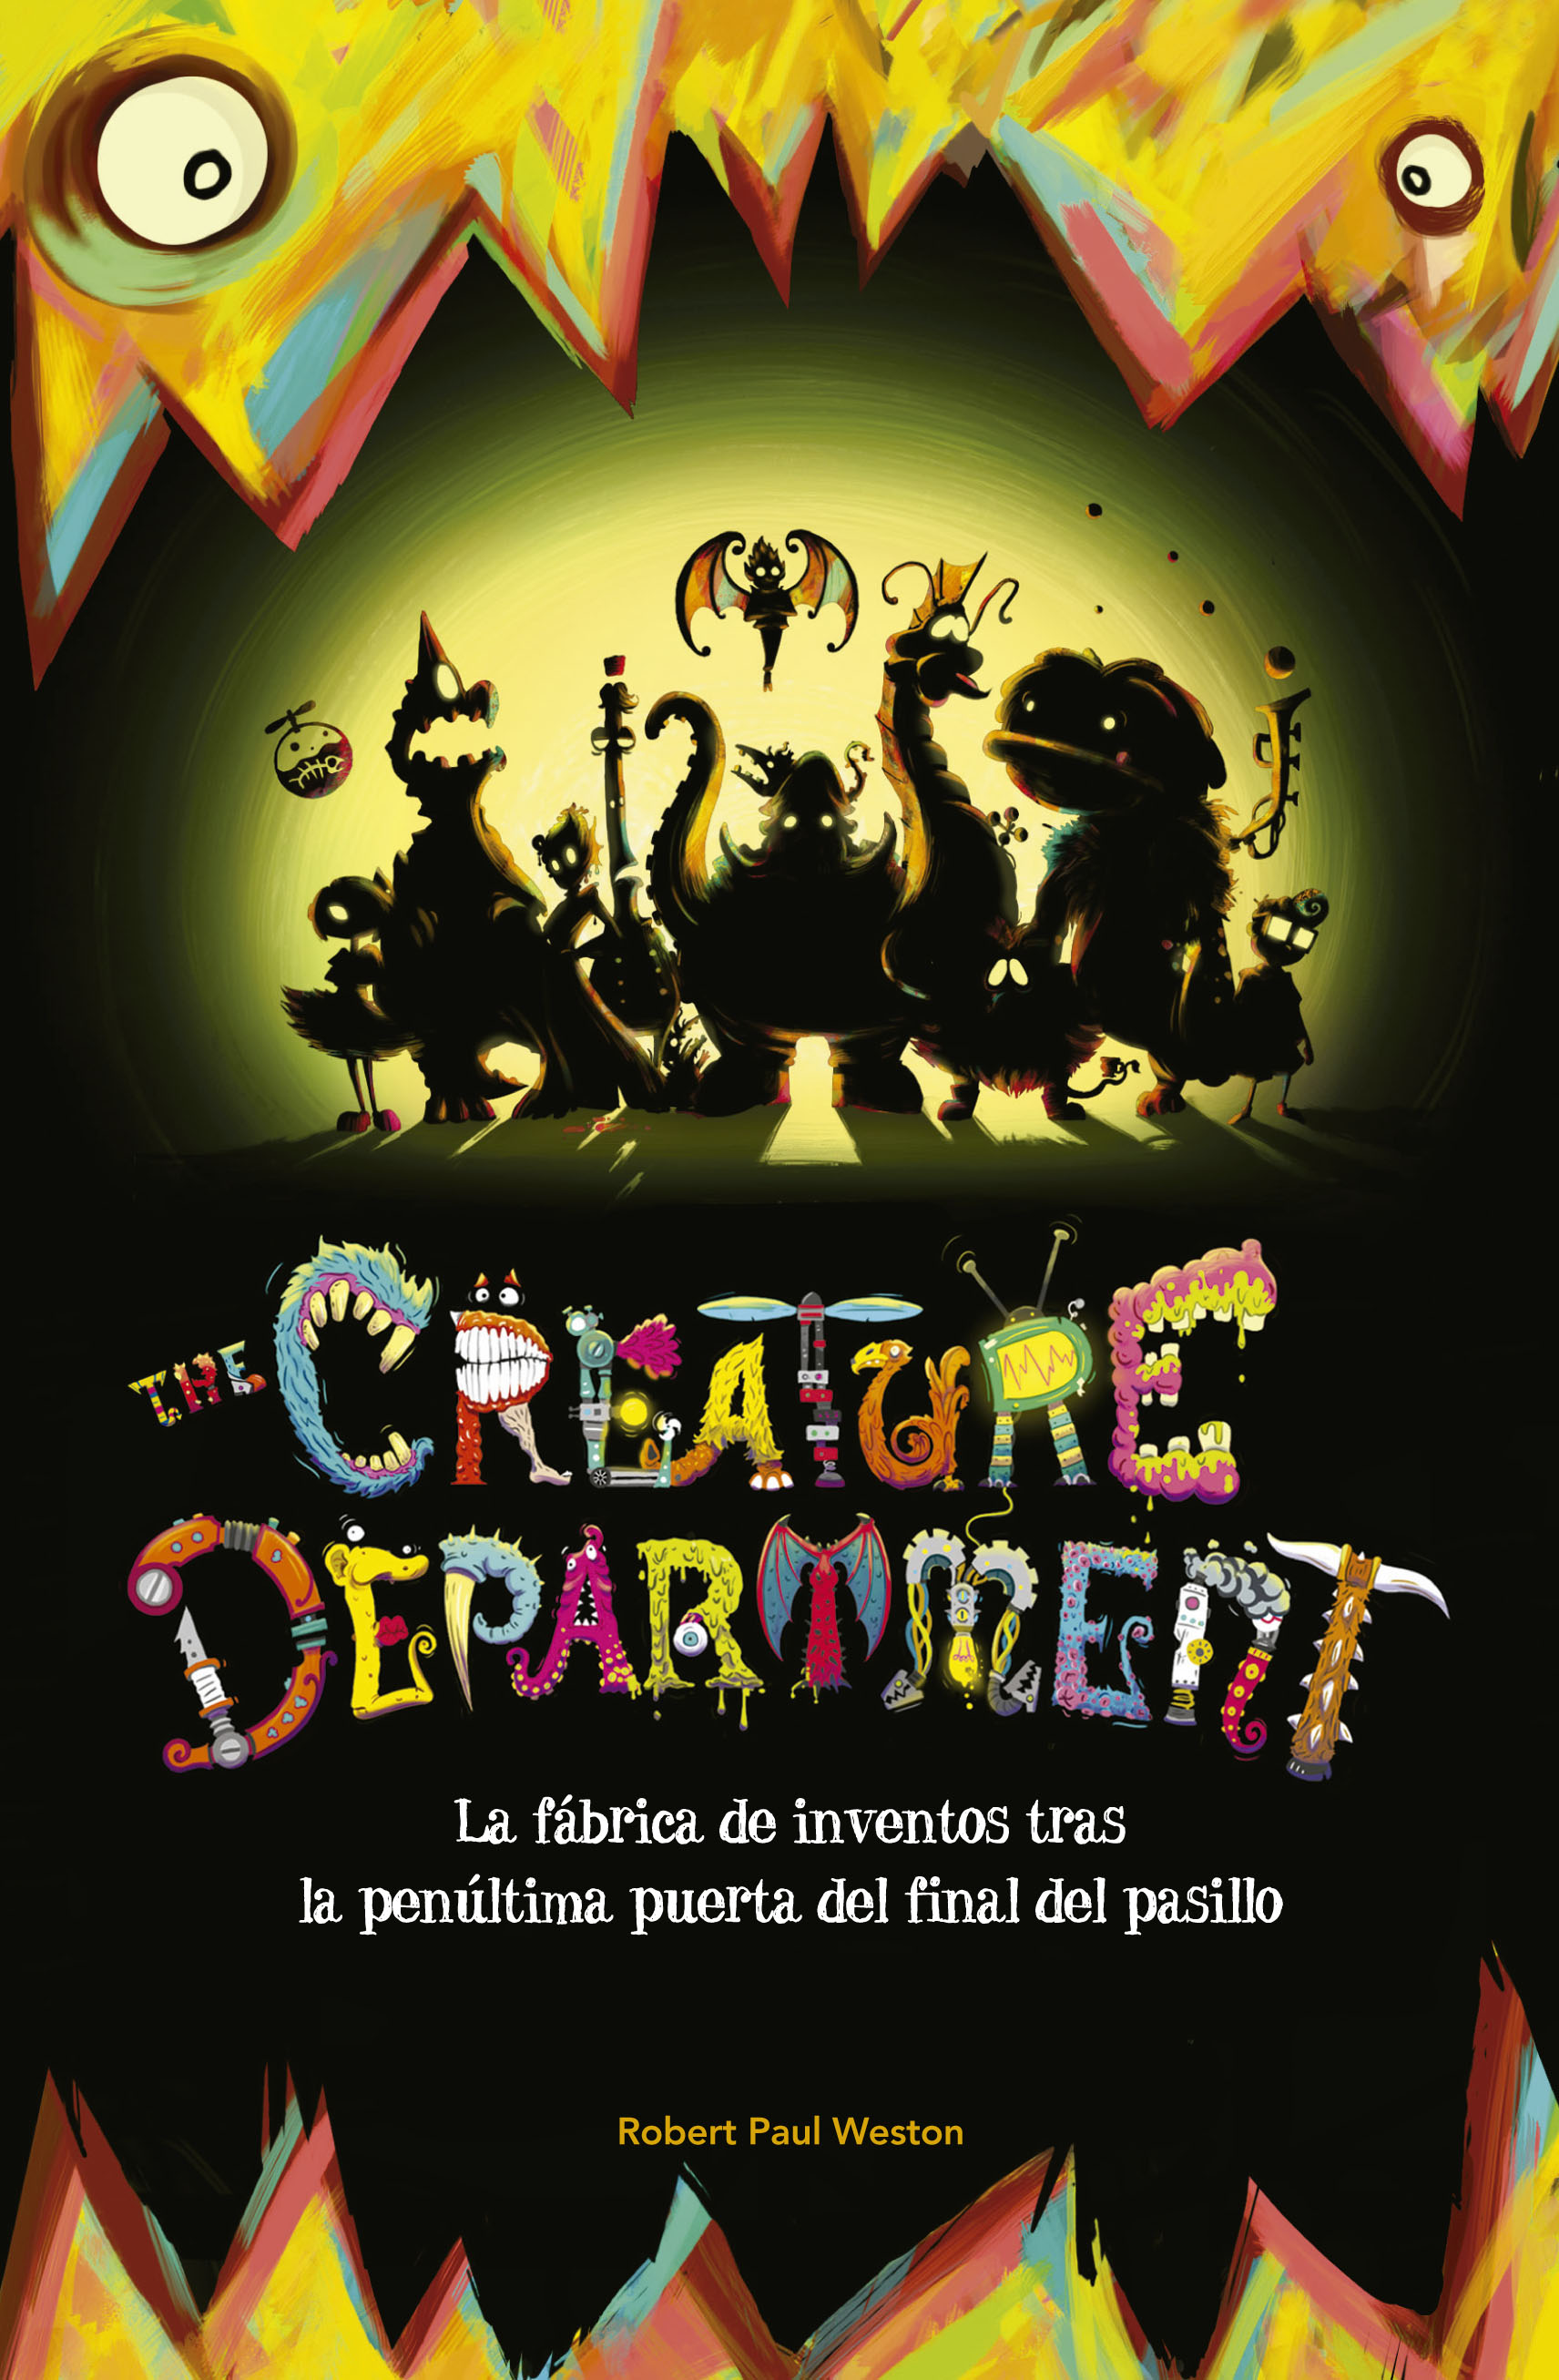 portada-the-creature-department-fabrica-inventos-tras-penultima-puerta-final-pasillo